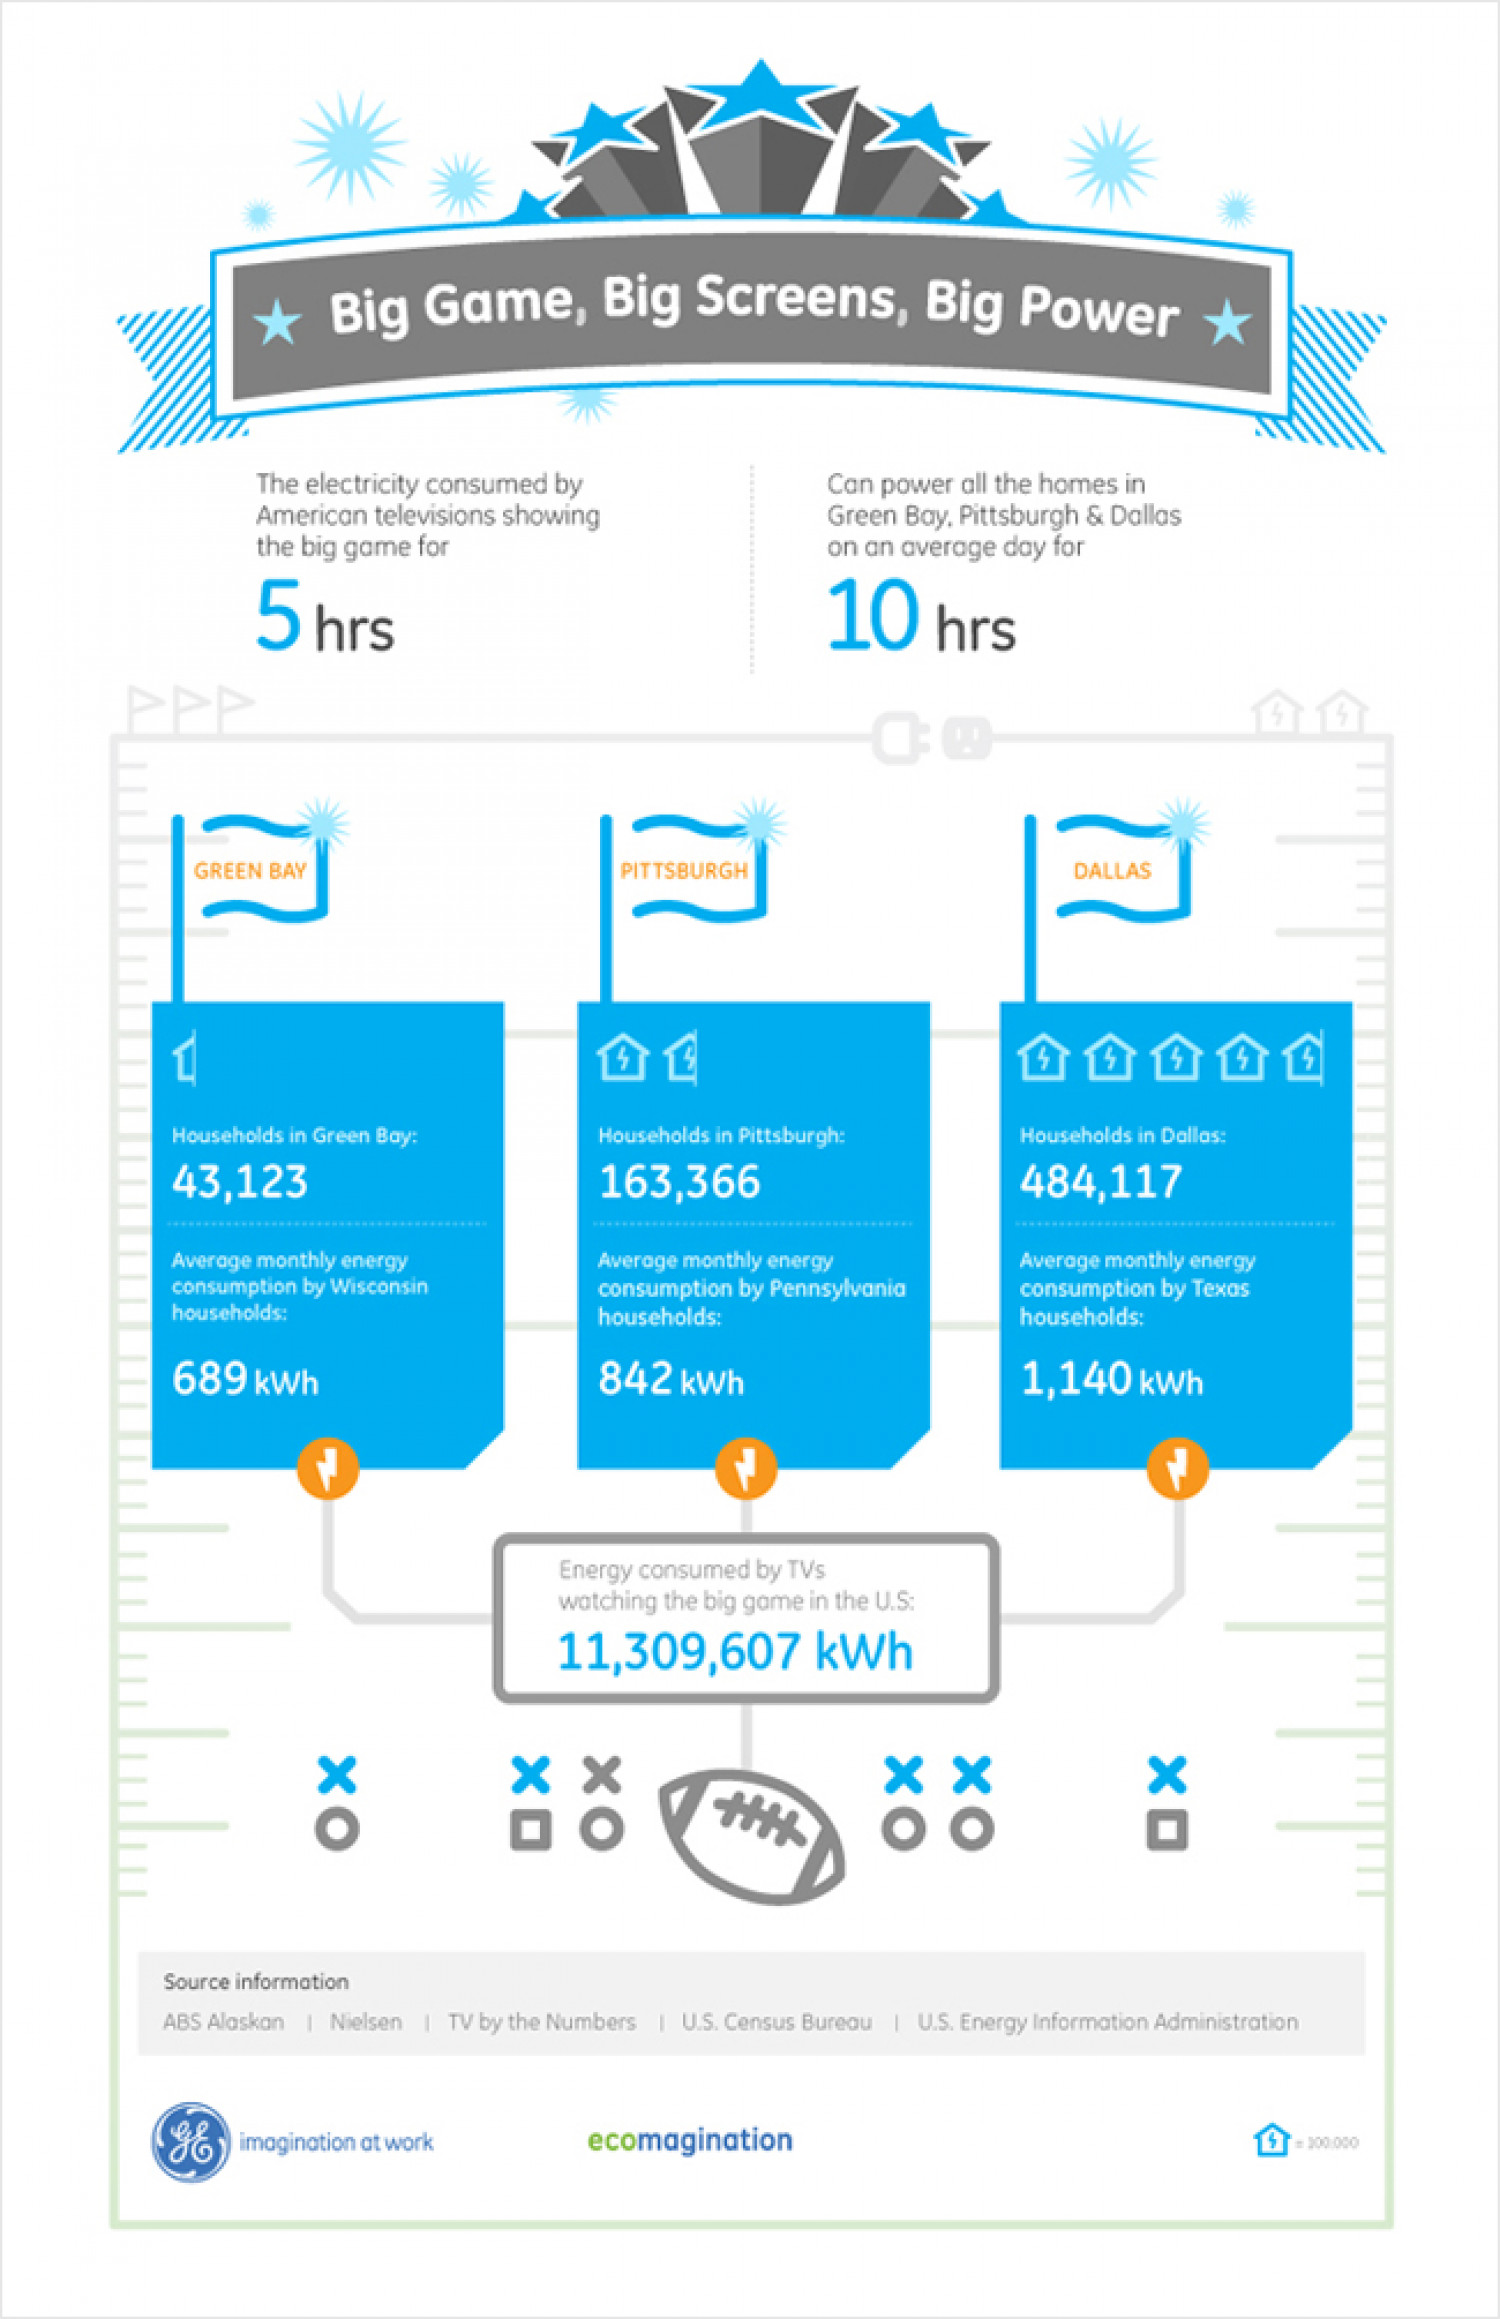 Super Bowl TV Energy Consumption Infographic